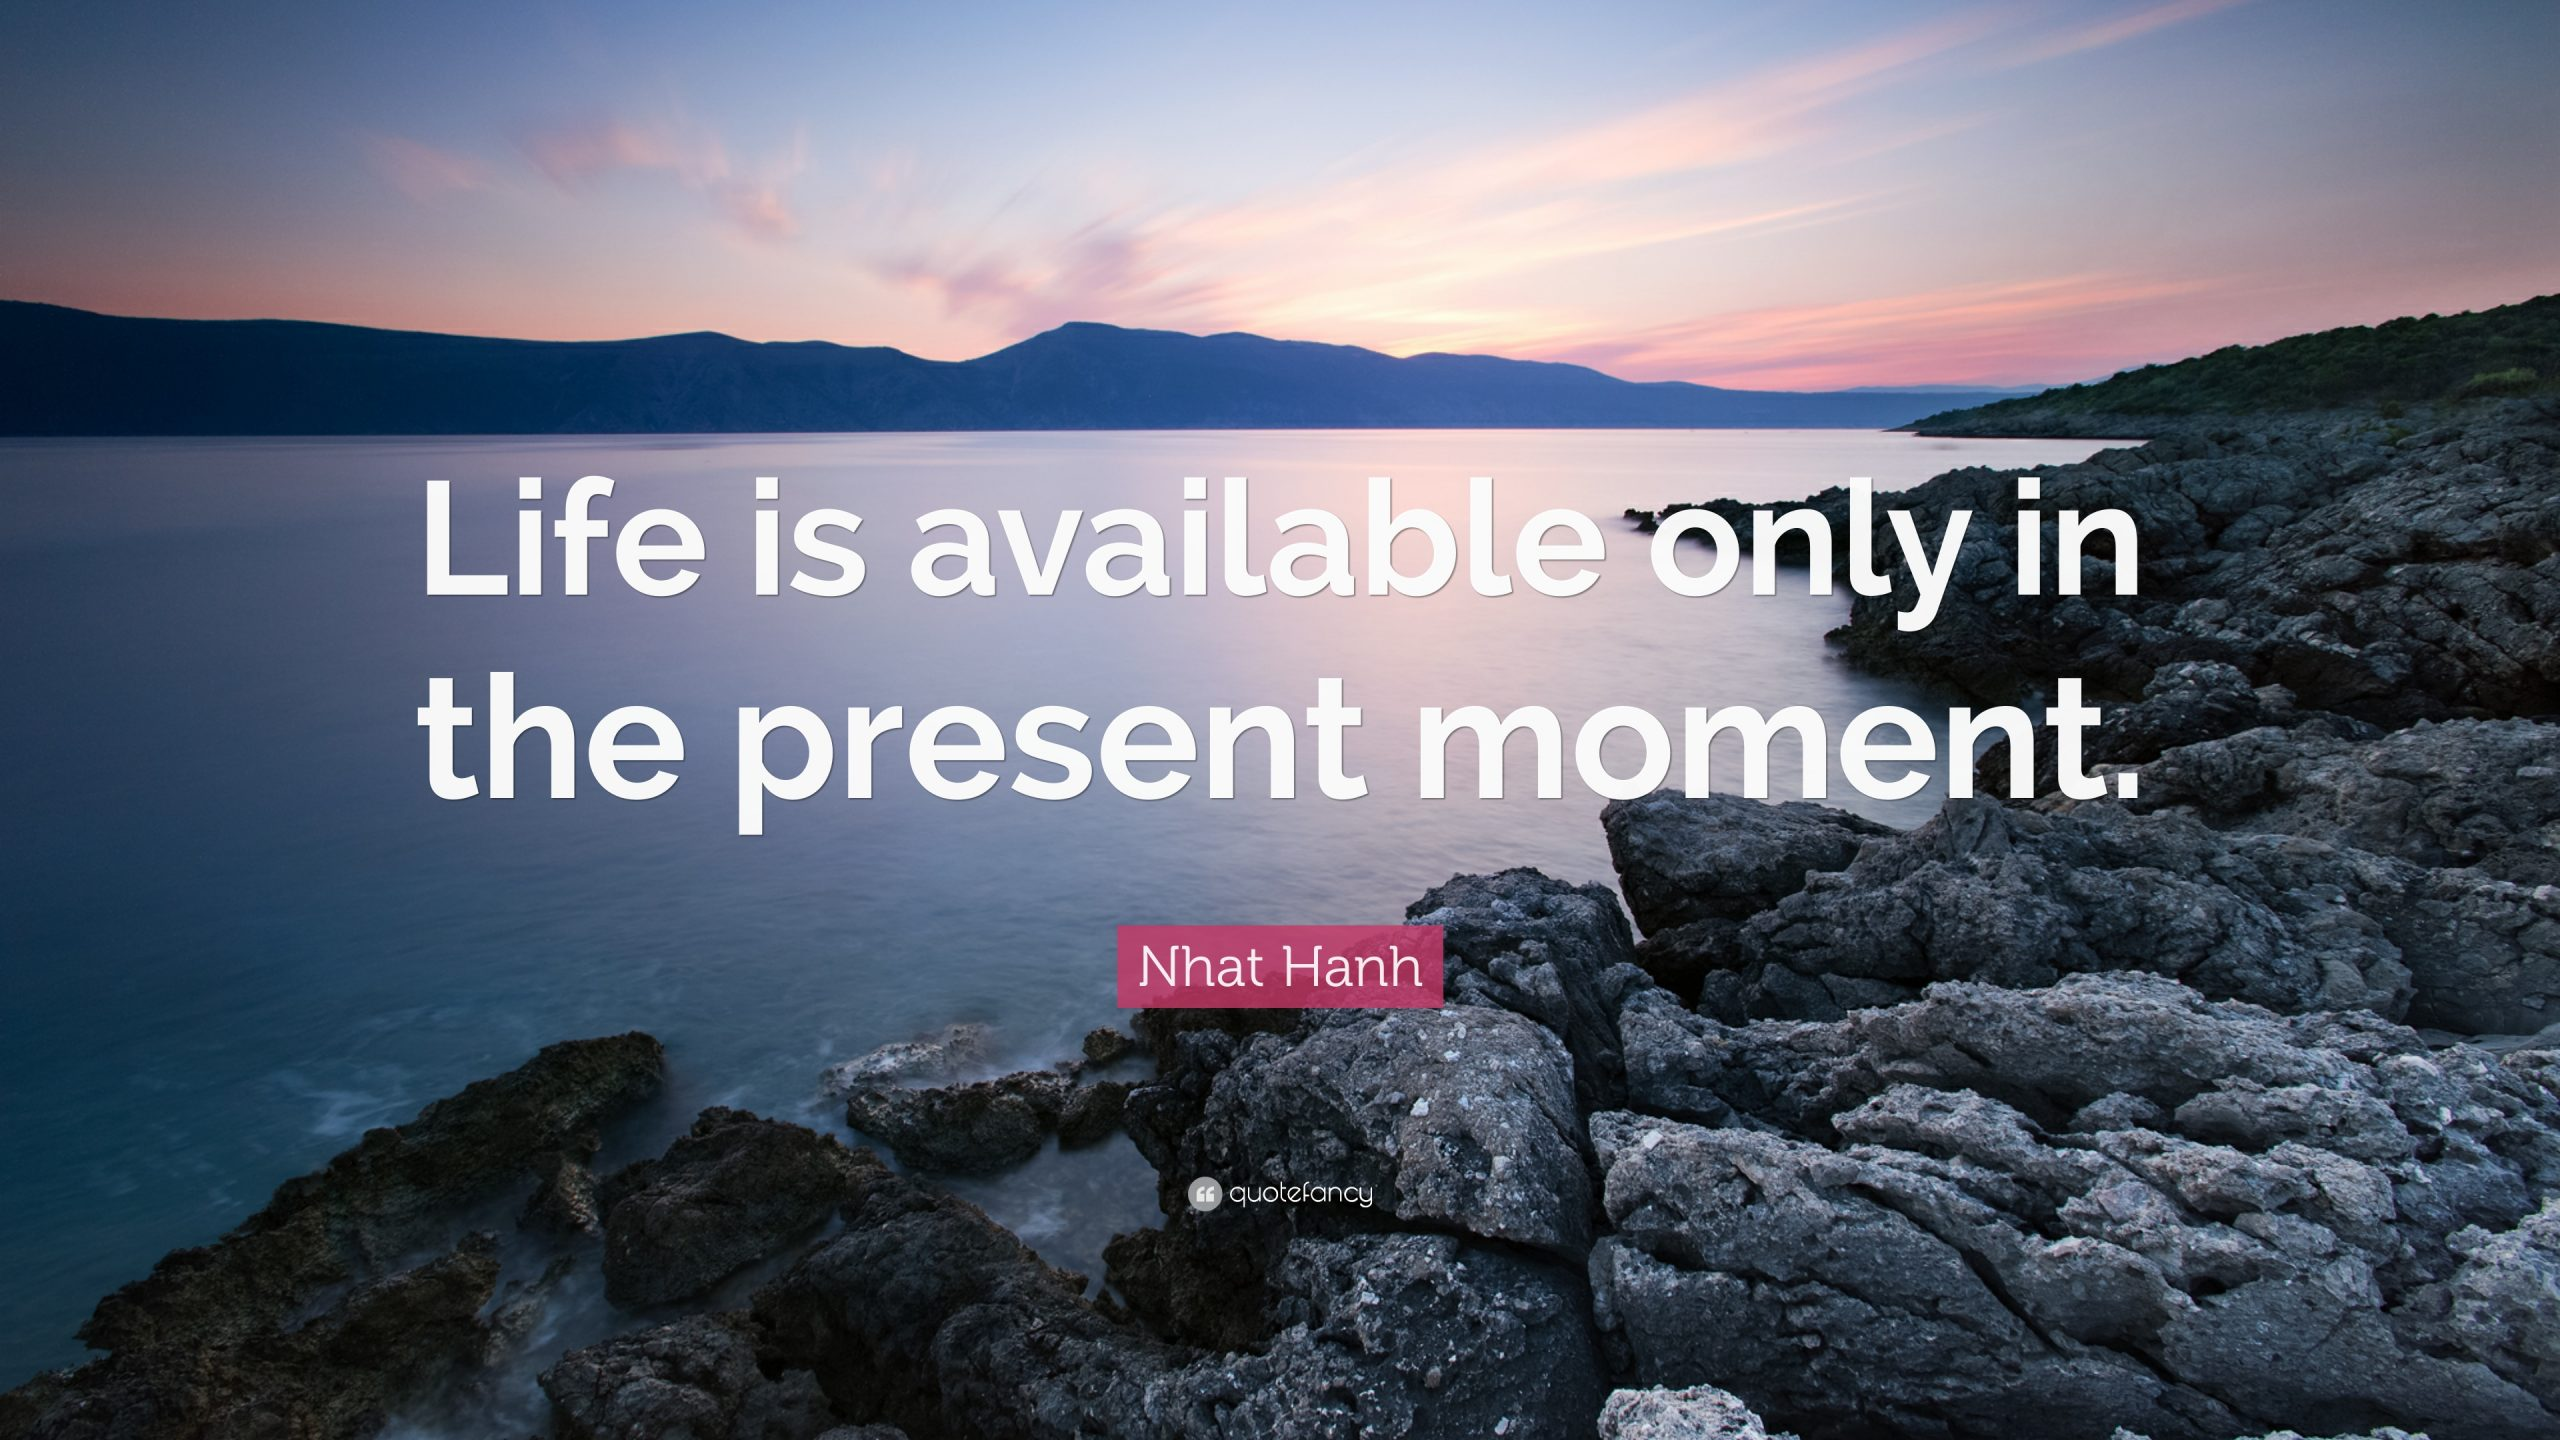 3 Reasons to Keep the Mind in the Present Moment